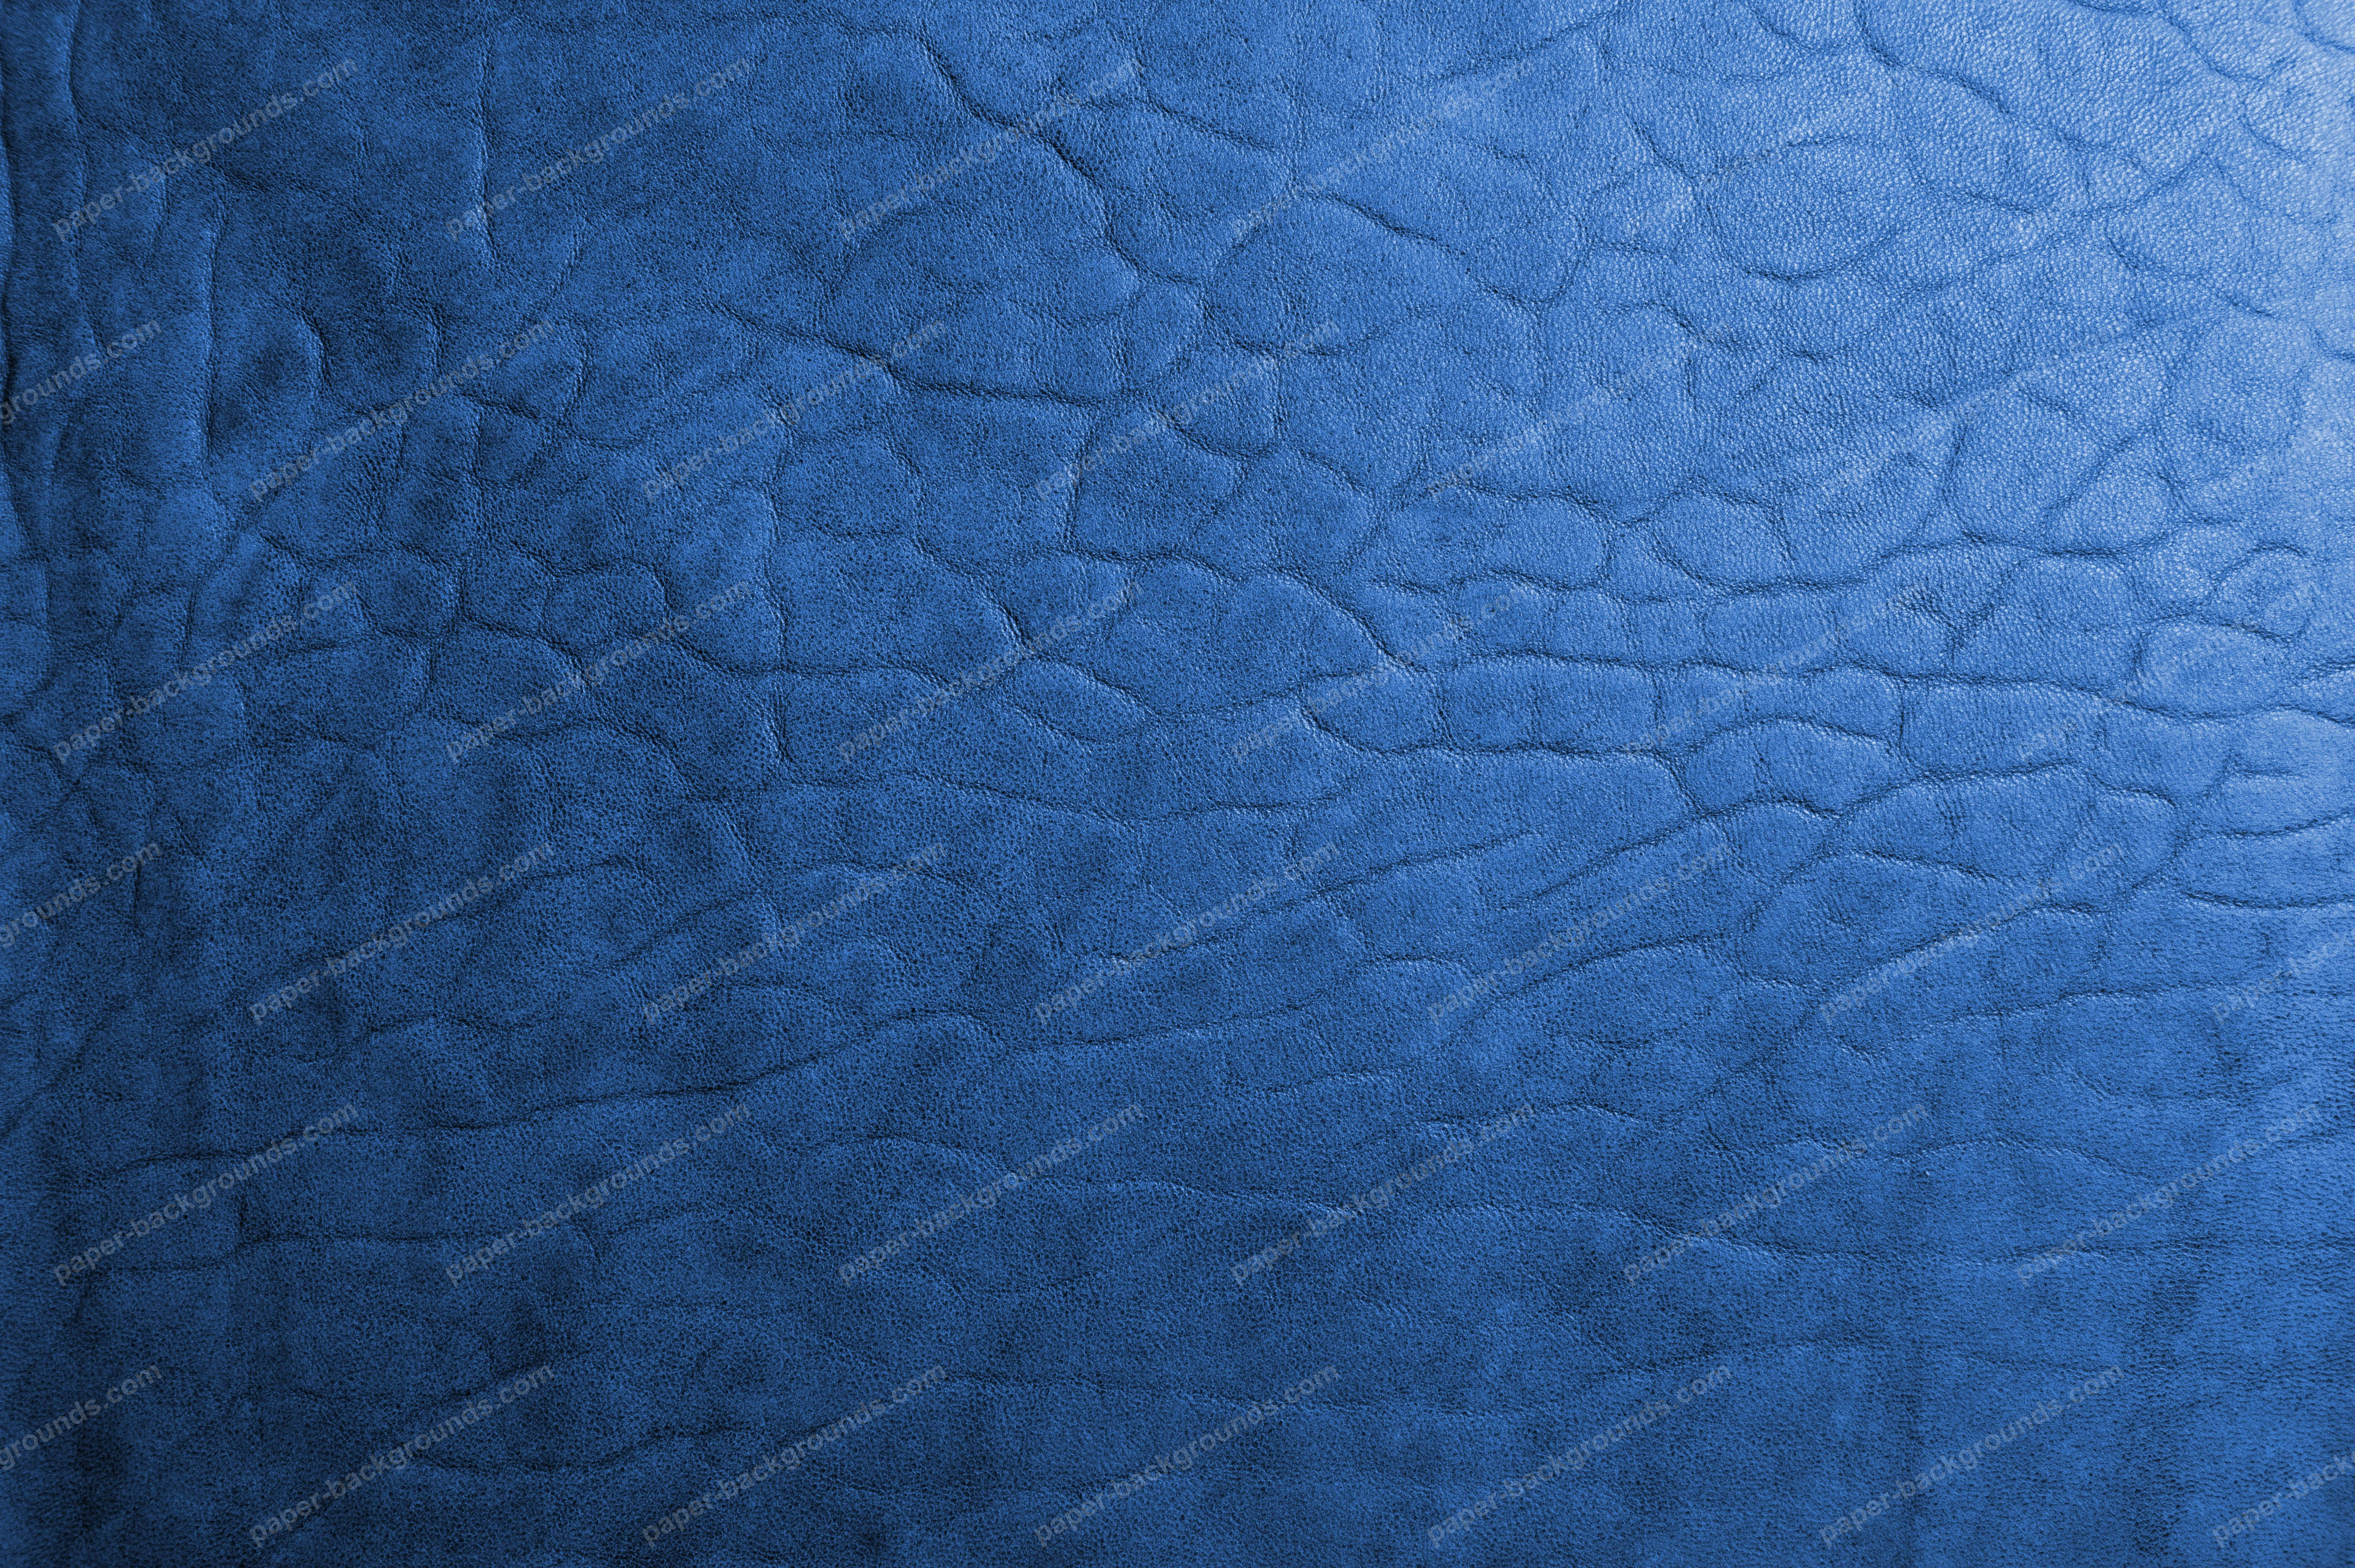 paper backgrounds dark blue background texture